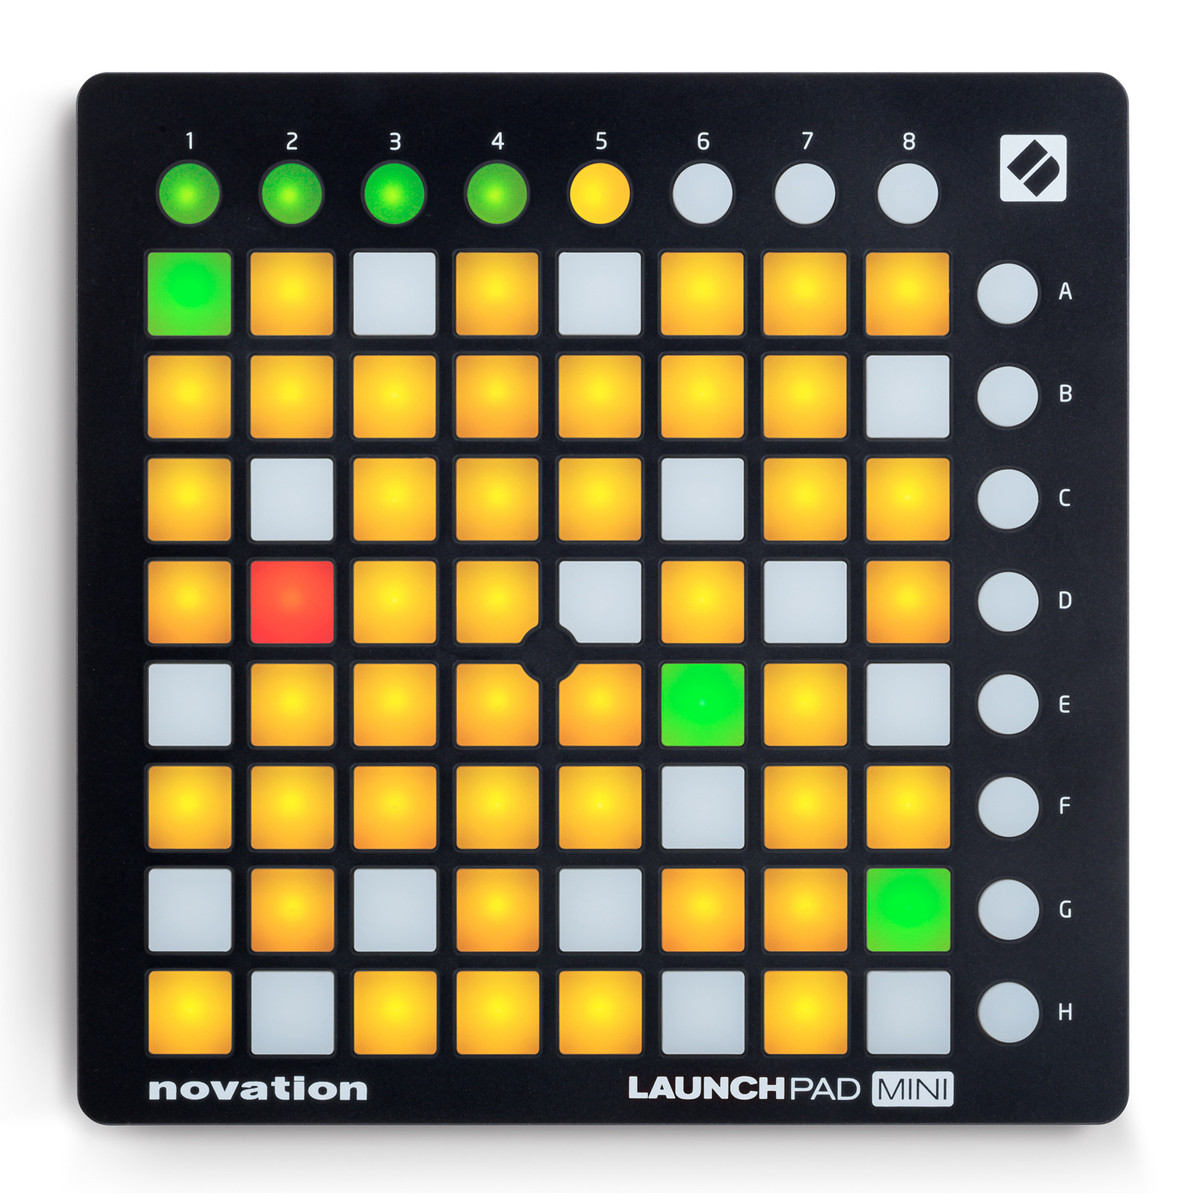 jual novation launchpad mini mk2 toko recording daw tokopedia. Black Bedroom Furniture Sets. Home Design Ideas